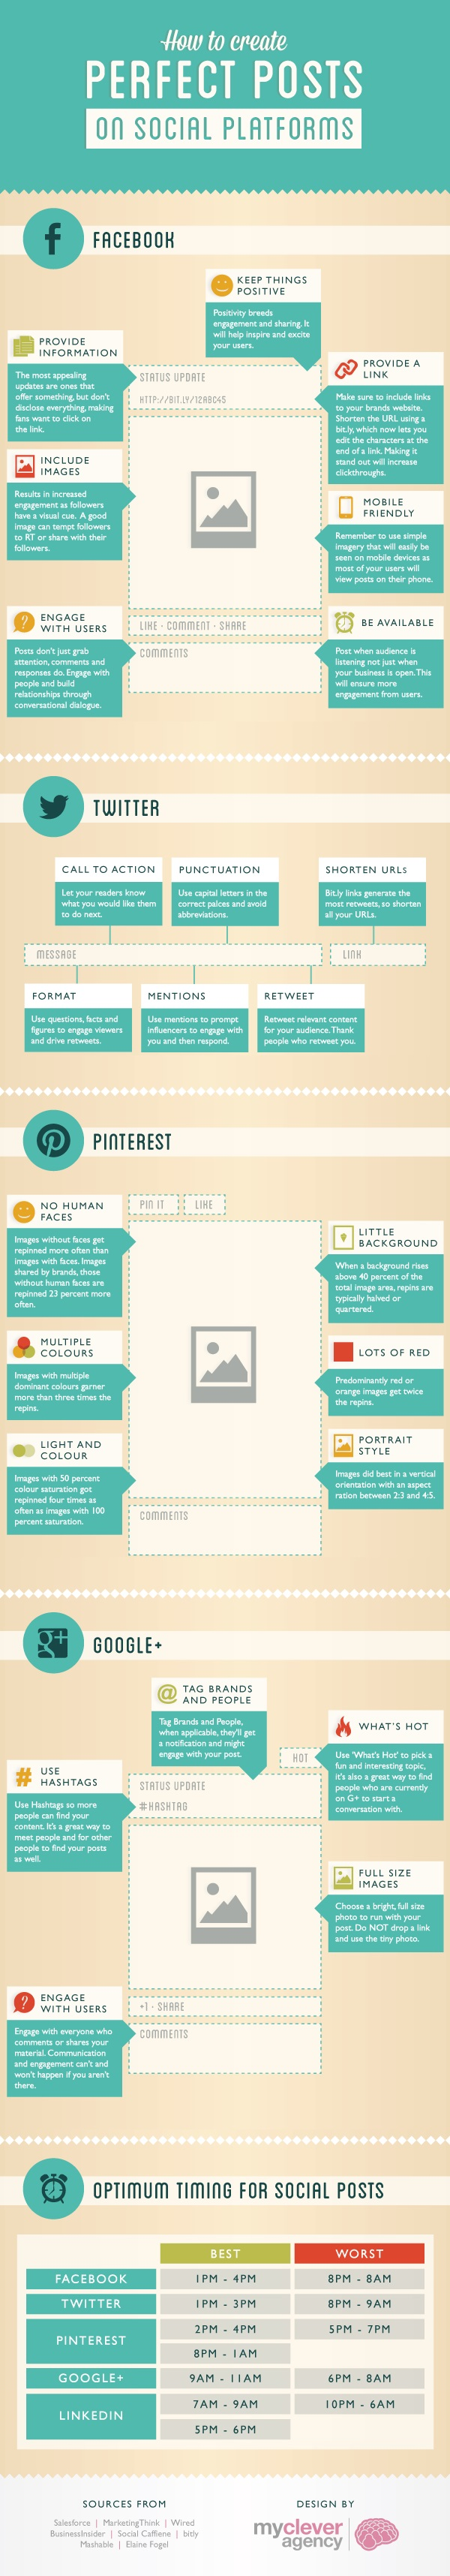 How-to-Post-on-Social-Media